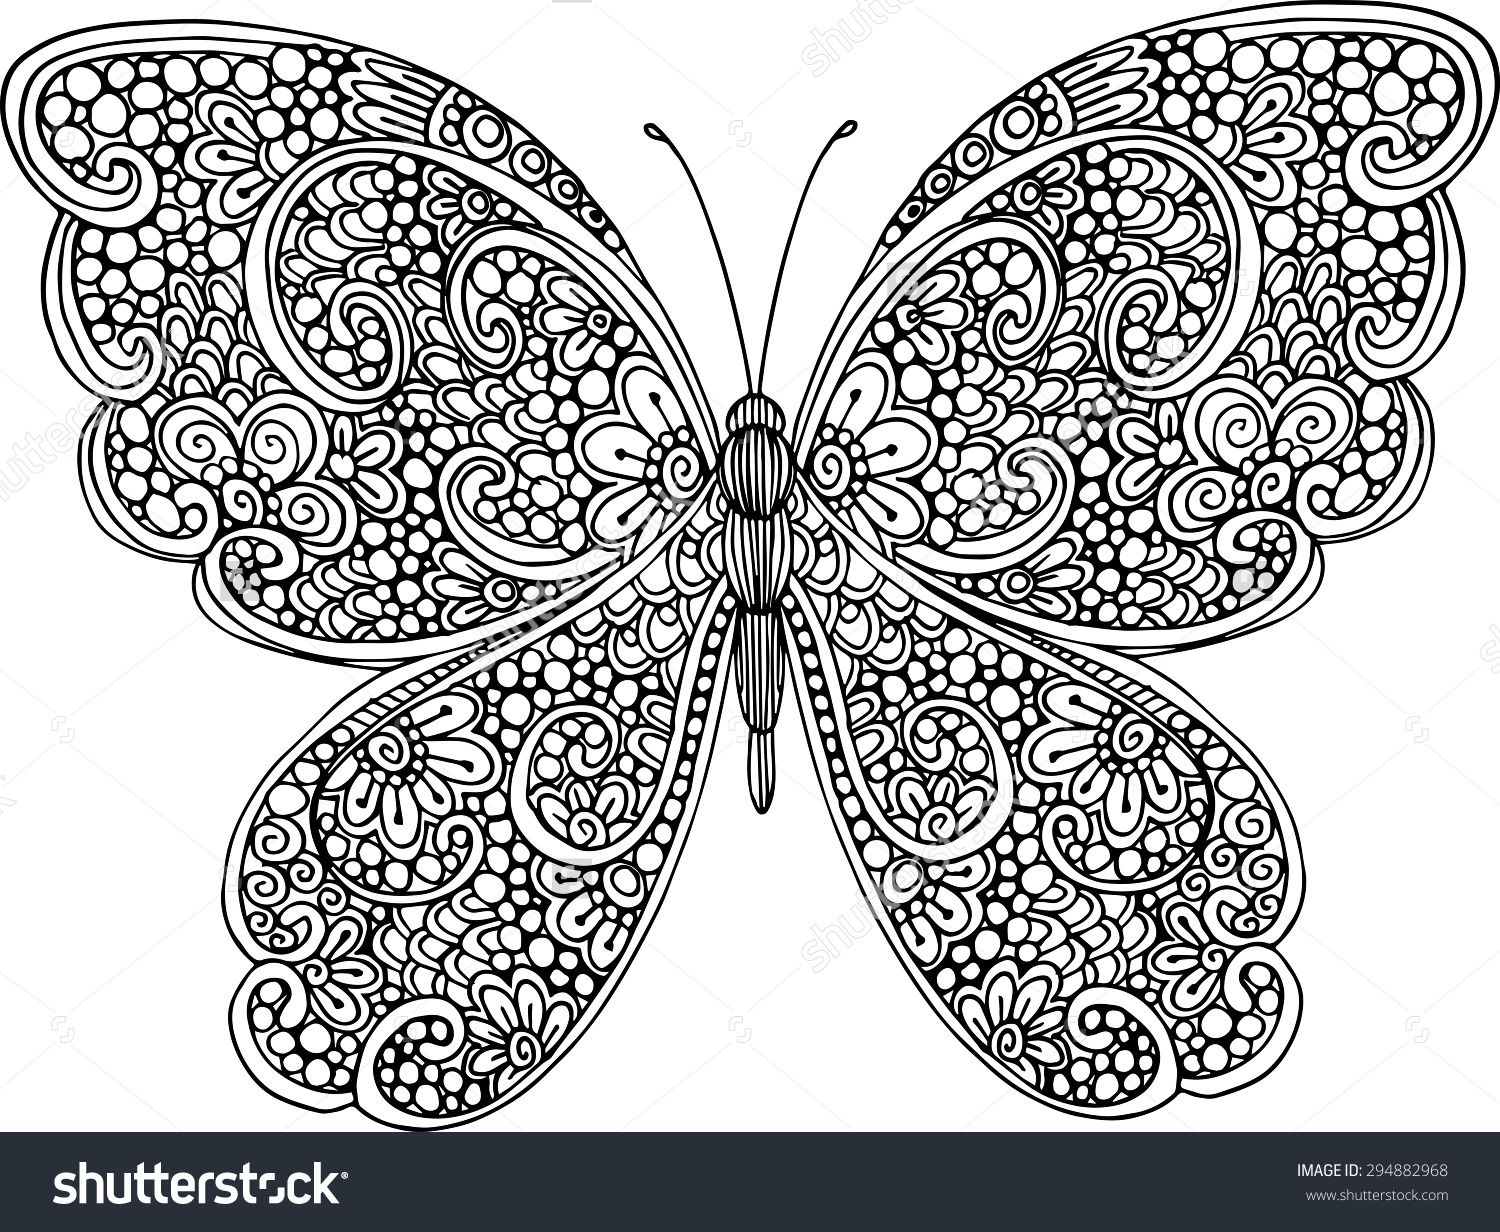 Hand Drawn Ornamental Butterfly Outline Illustration With Decorative Ornaments Butterfly Coloring Page Mandala Coloring Pages Mandala Coloring [ 1232 x 1500 Pixel ]